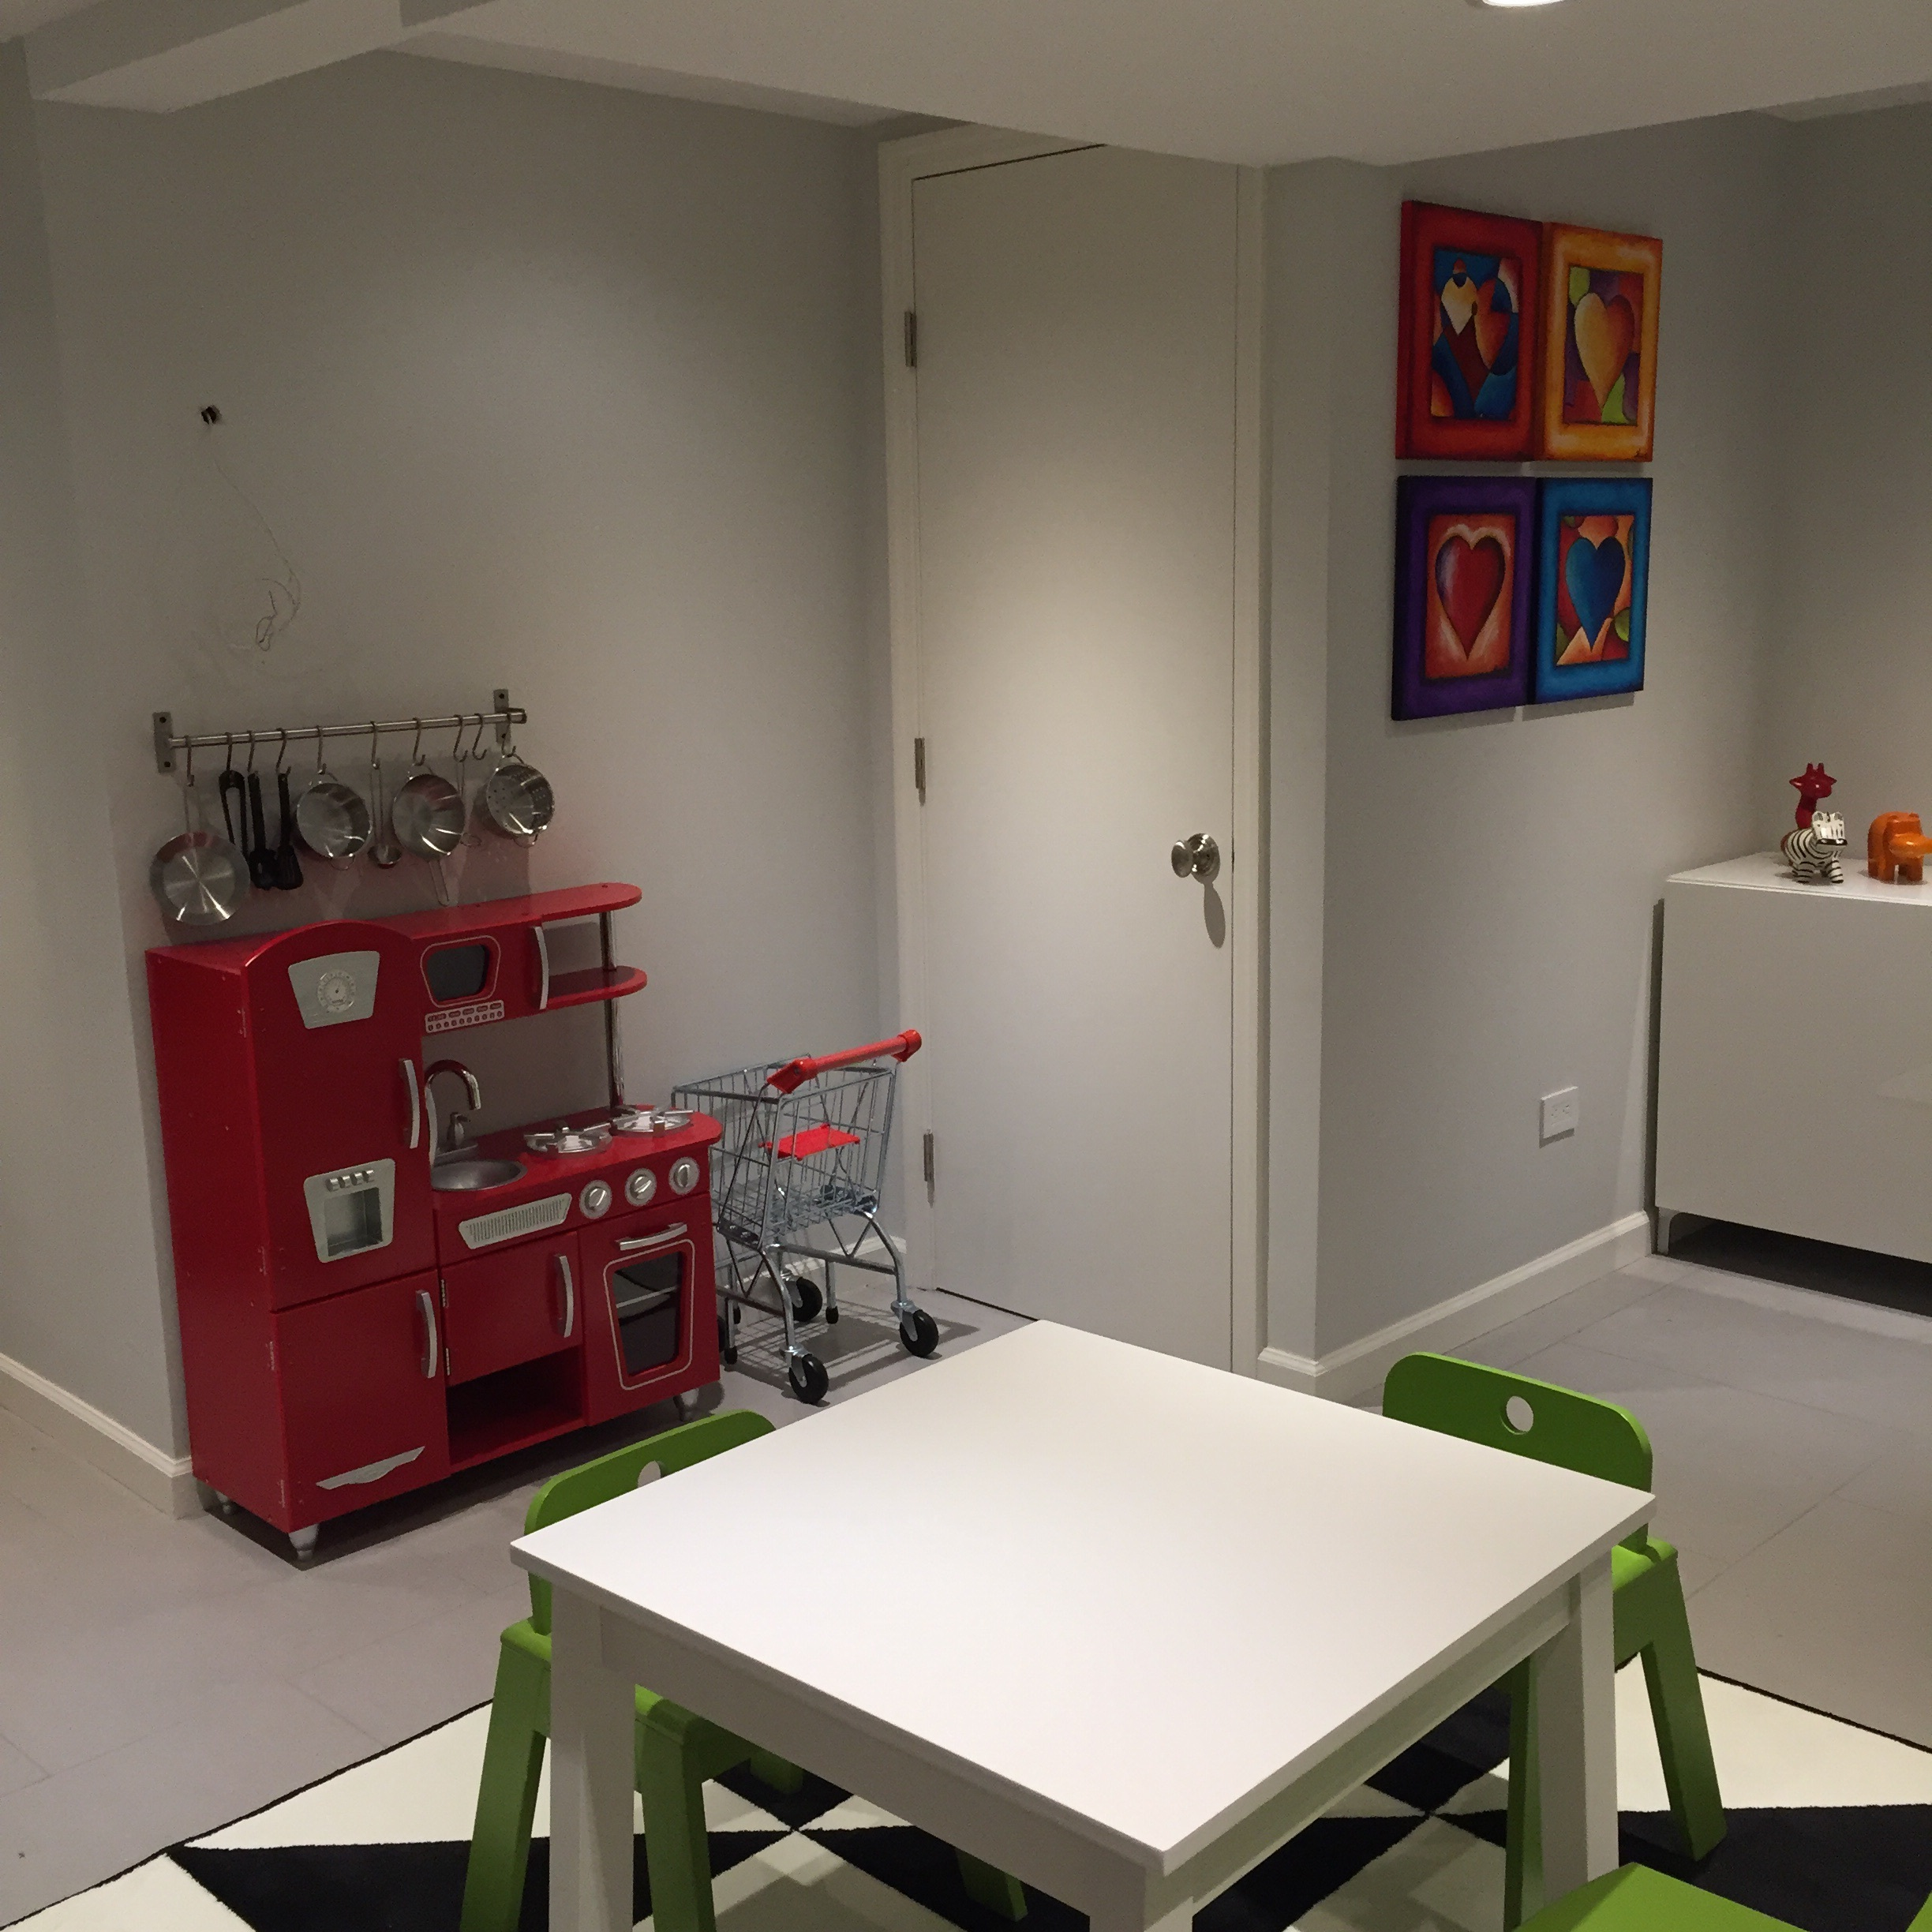 Check out that adorable play kitchen! And the shopping cart!